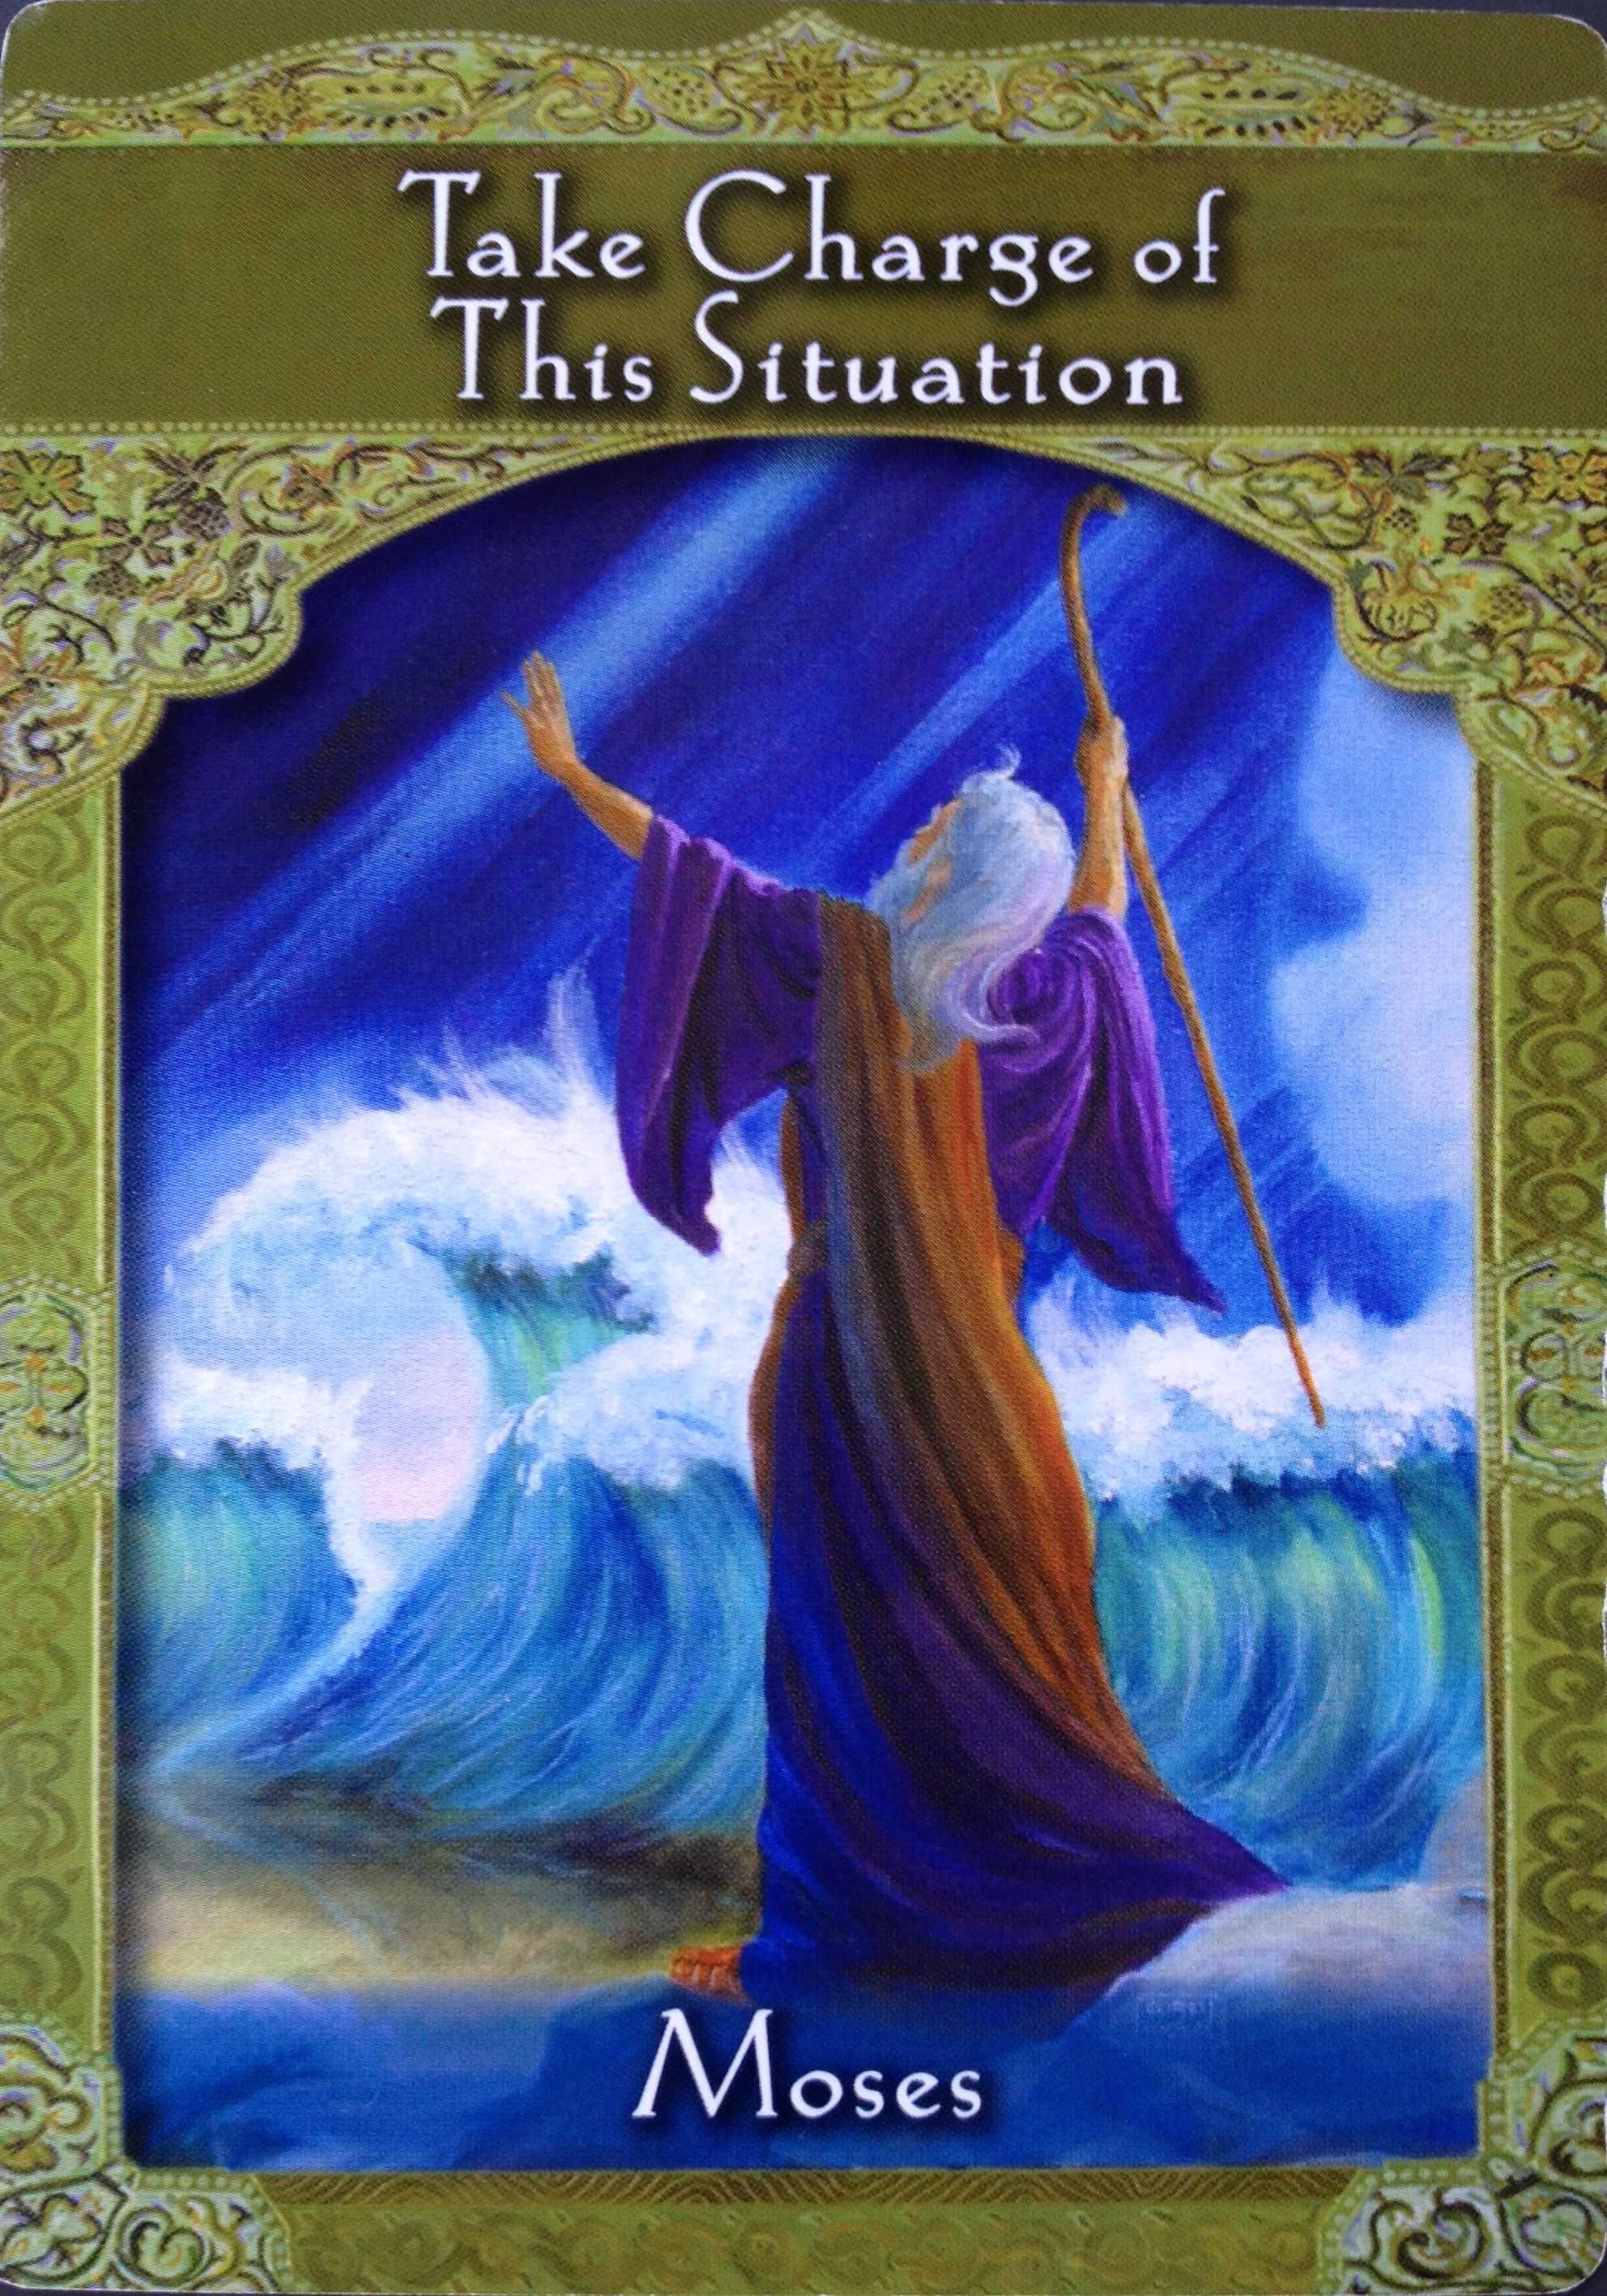 #MidWeekReading ~ Thursday 4 Dec 2014: please visit my facebook page to view this reading. Enjoy the rest of your week! Vanda xx #SpiritualGuidance #psychic #oracle #CurrentEnergies